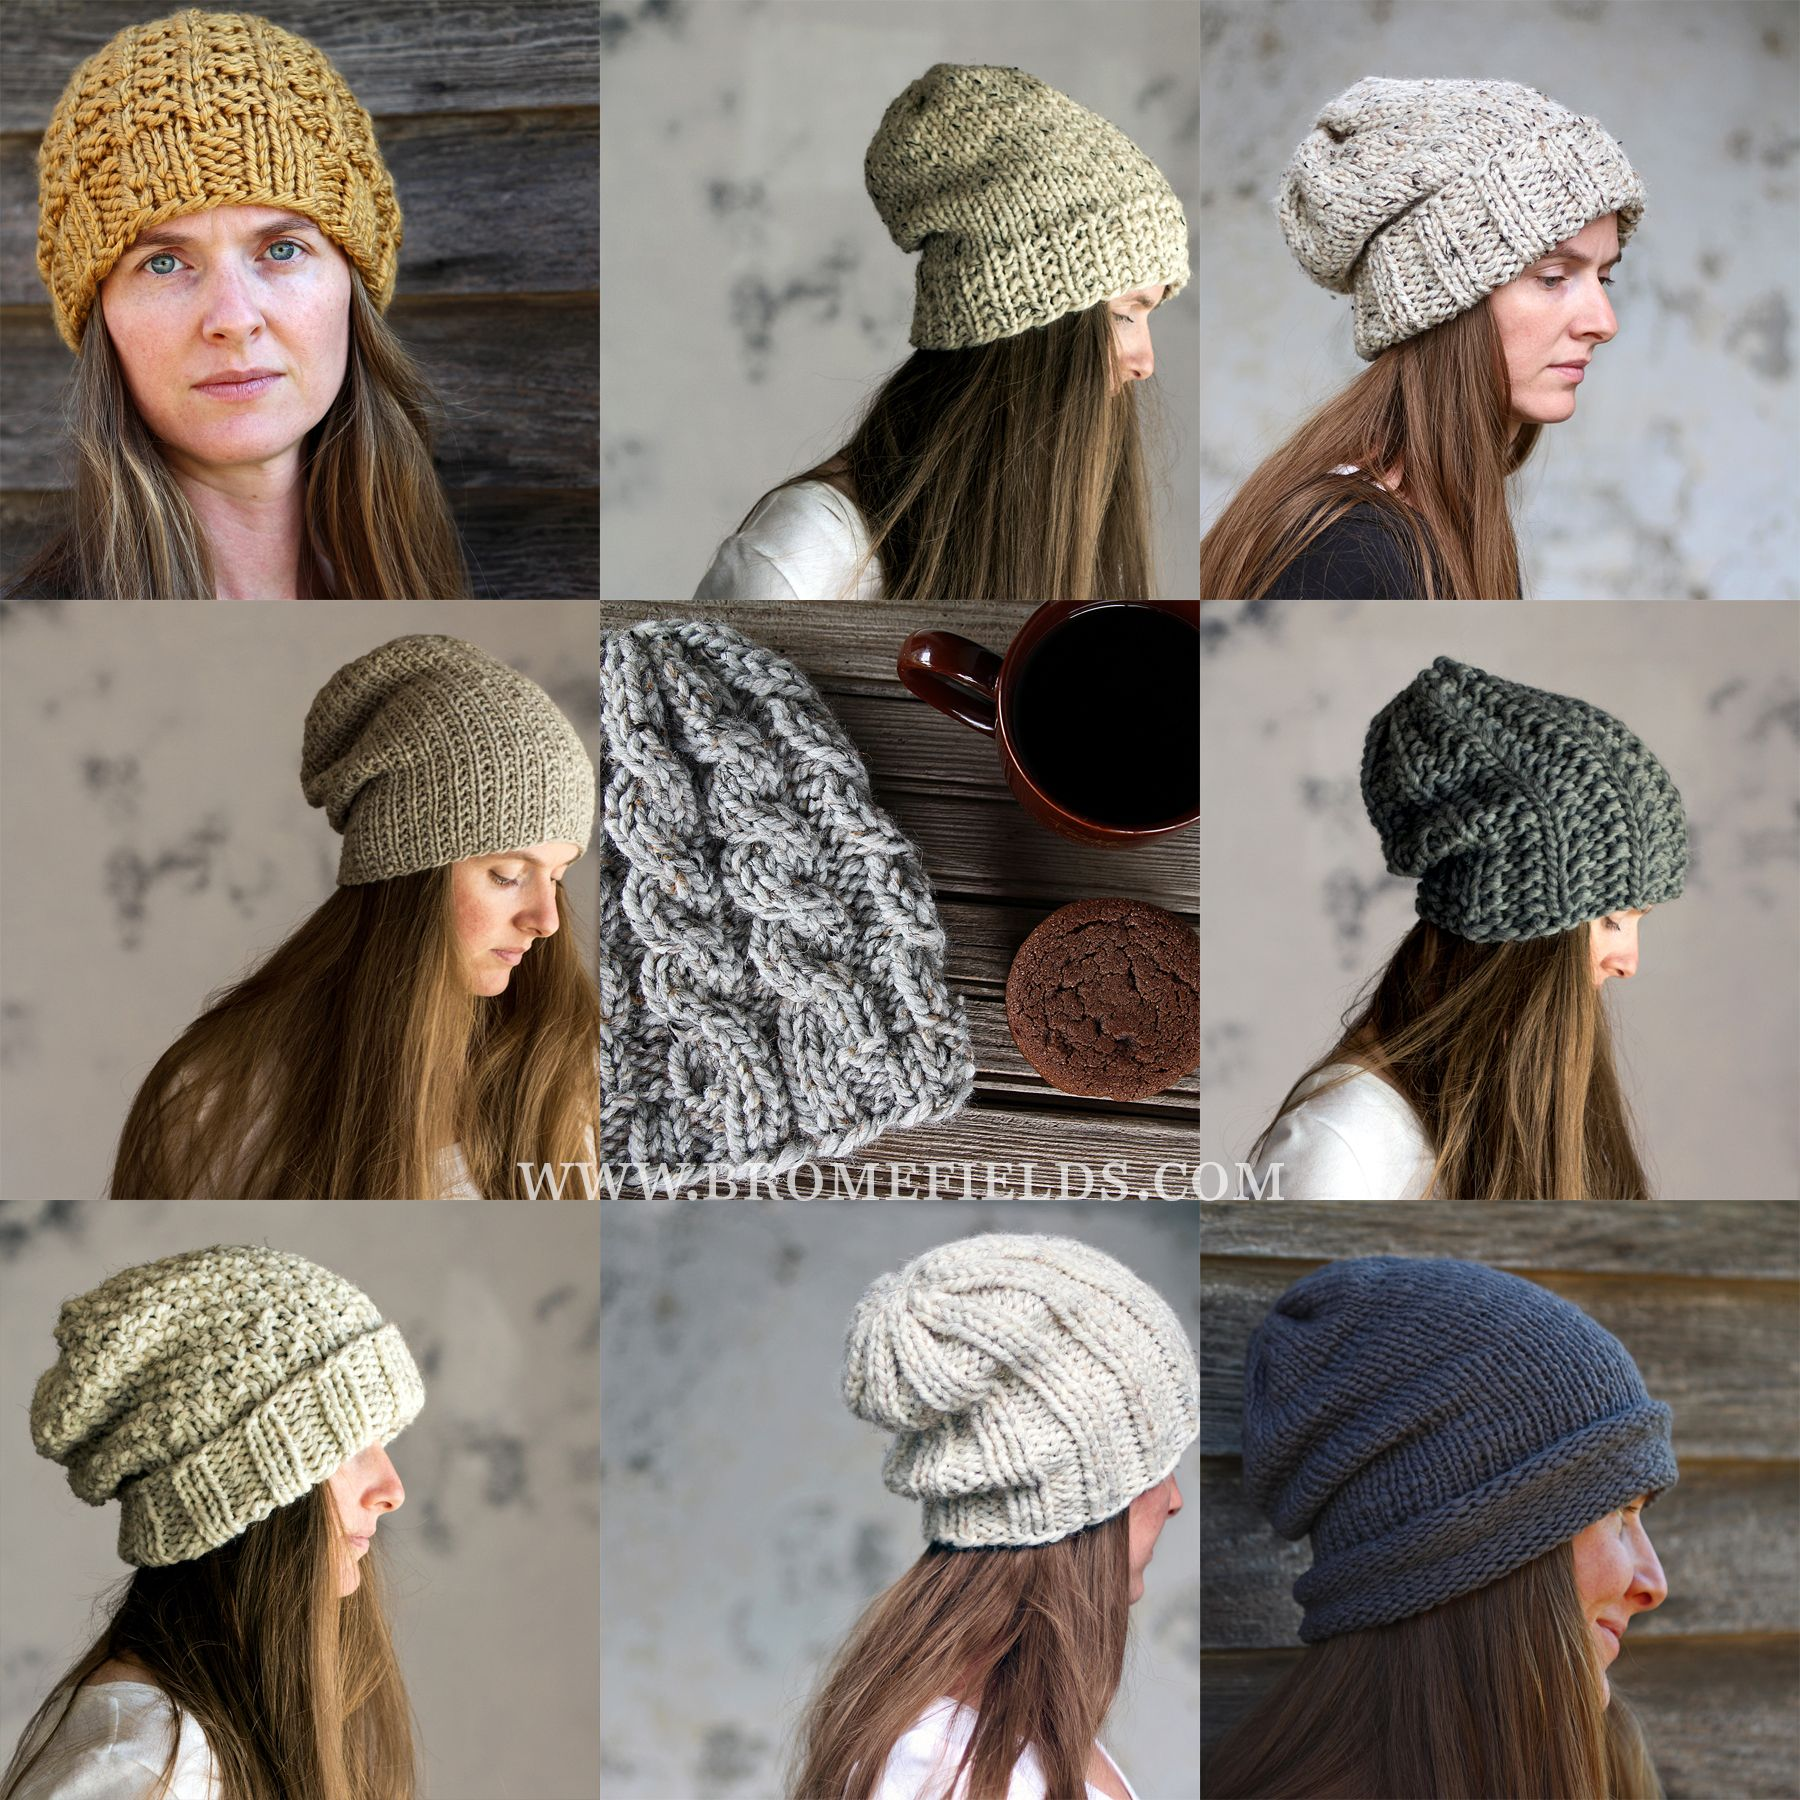 $15 pattern download Top 10 Hat Knitting Patterns by Brome Fields ...